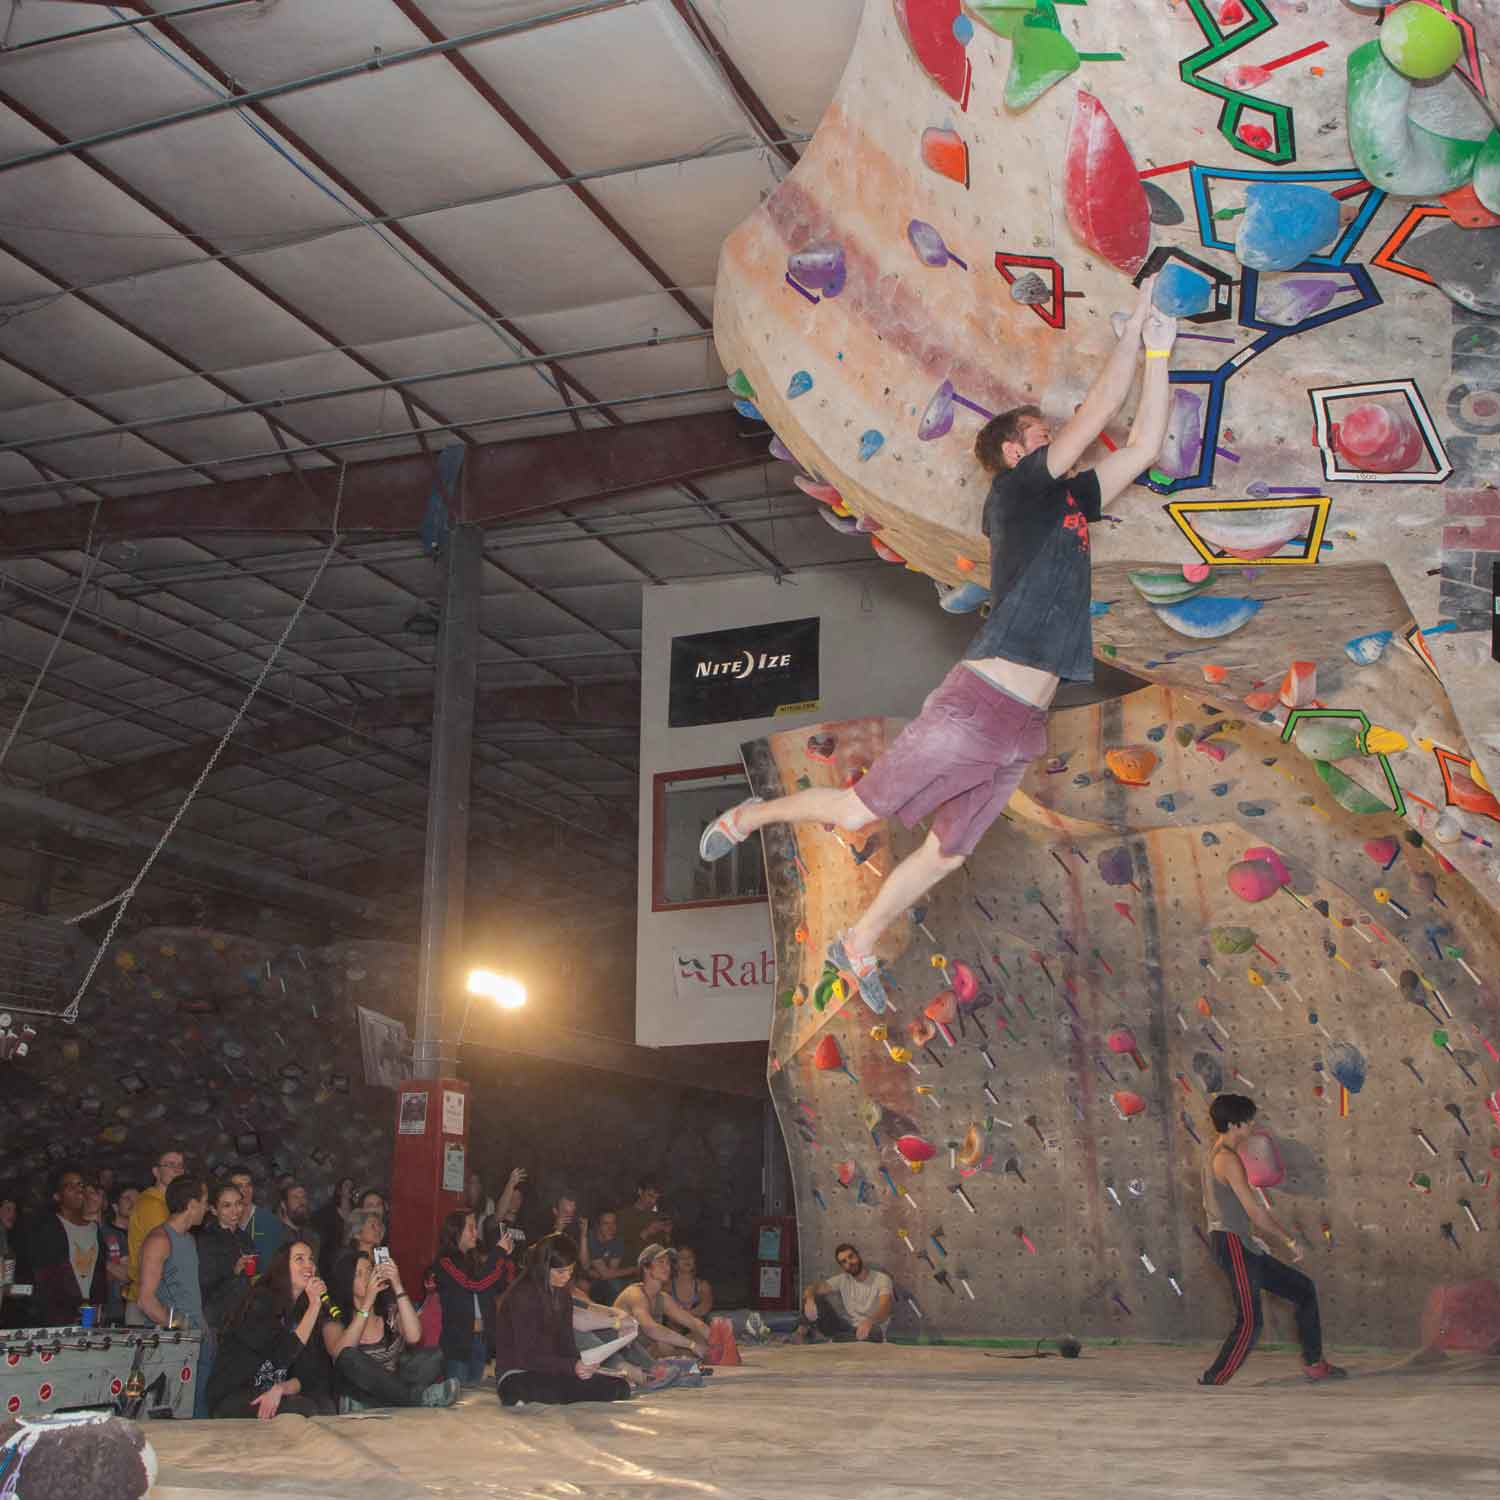 Dynomite - Get ready to launch on a special set of awesome dynos at this one-of-a-kind Spot event! Test your jumping skills and try for a place in finals or kick back, relax, and enjoy the show, food, beer, and raffle with incredible prizes!